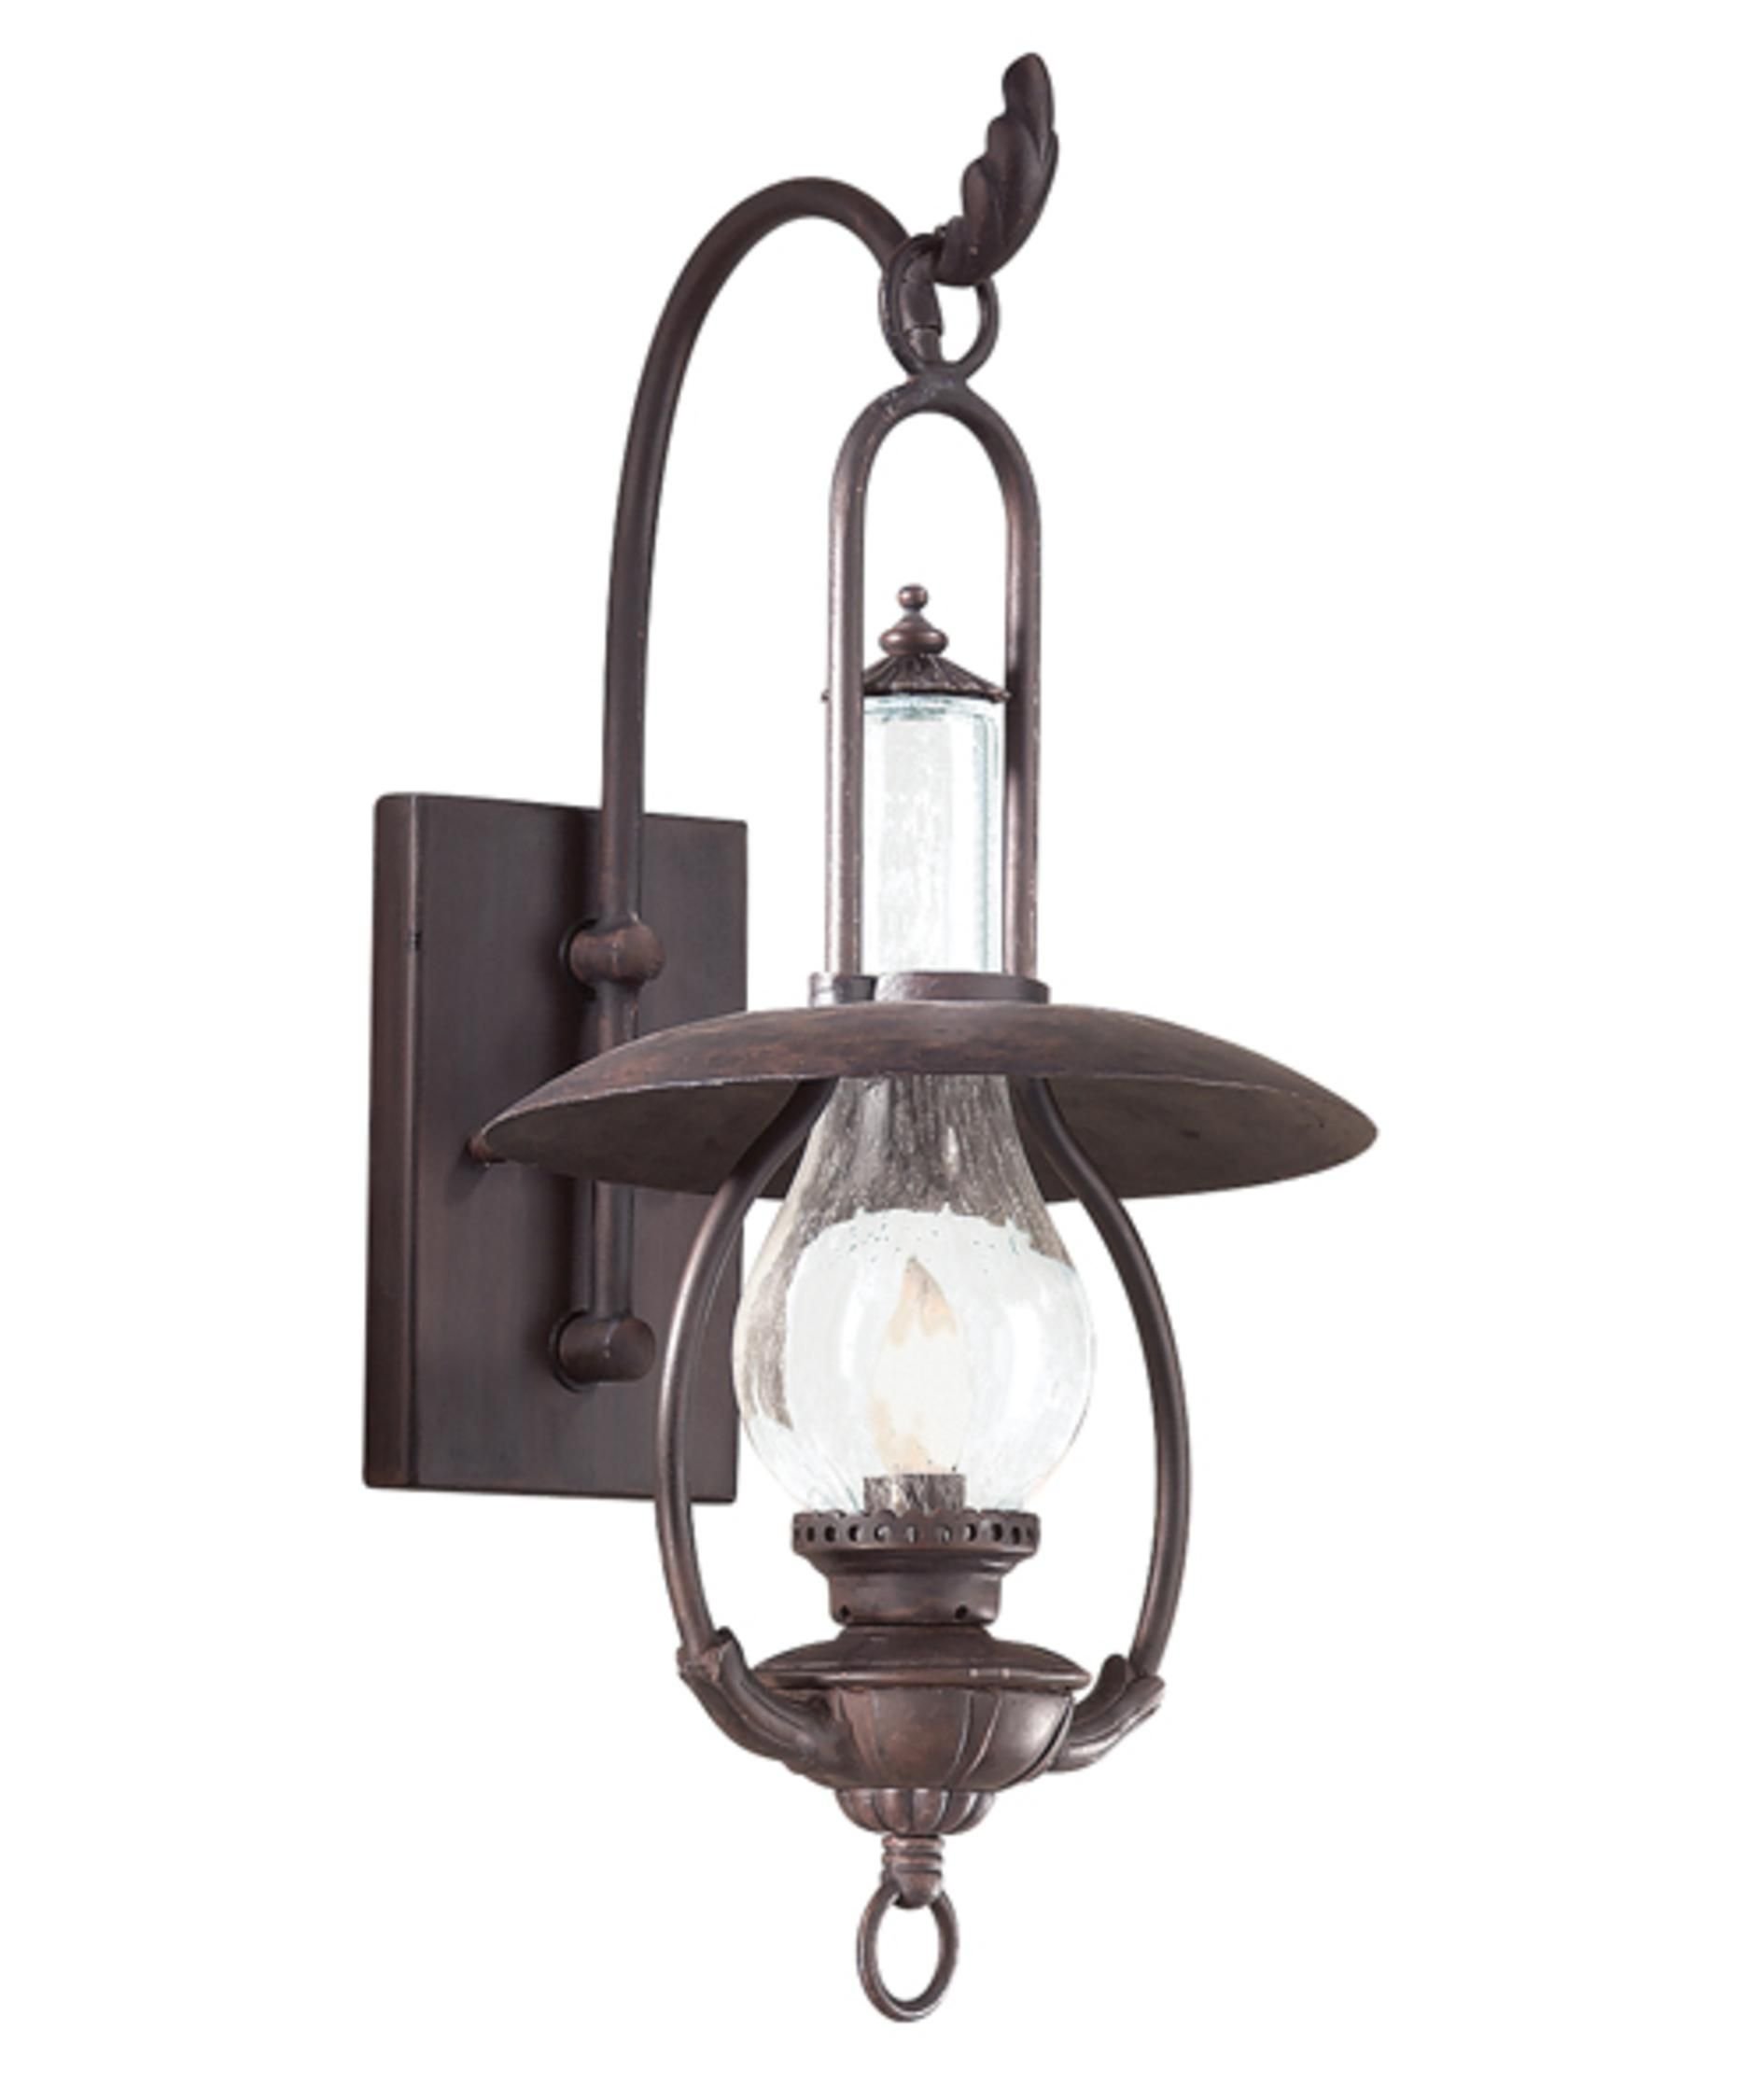 Troy Lighting La Grange H 1 Light Outdoor Wall Sconce